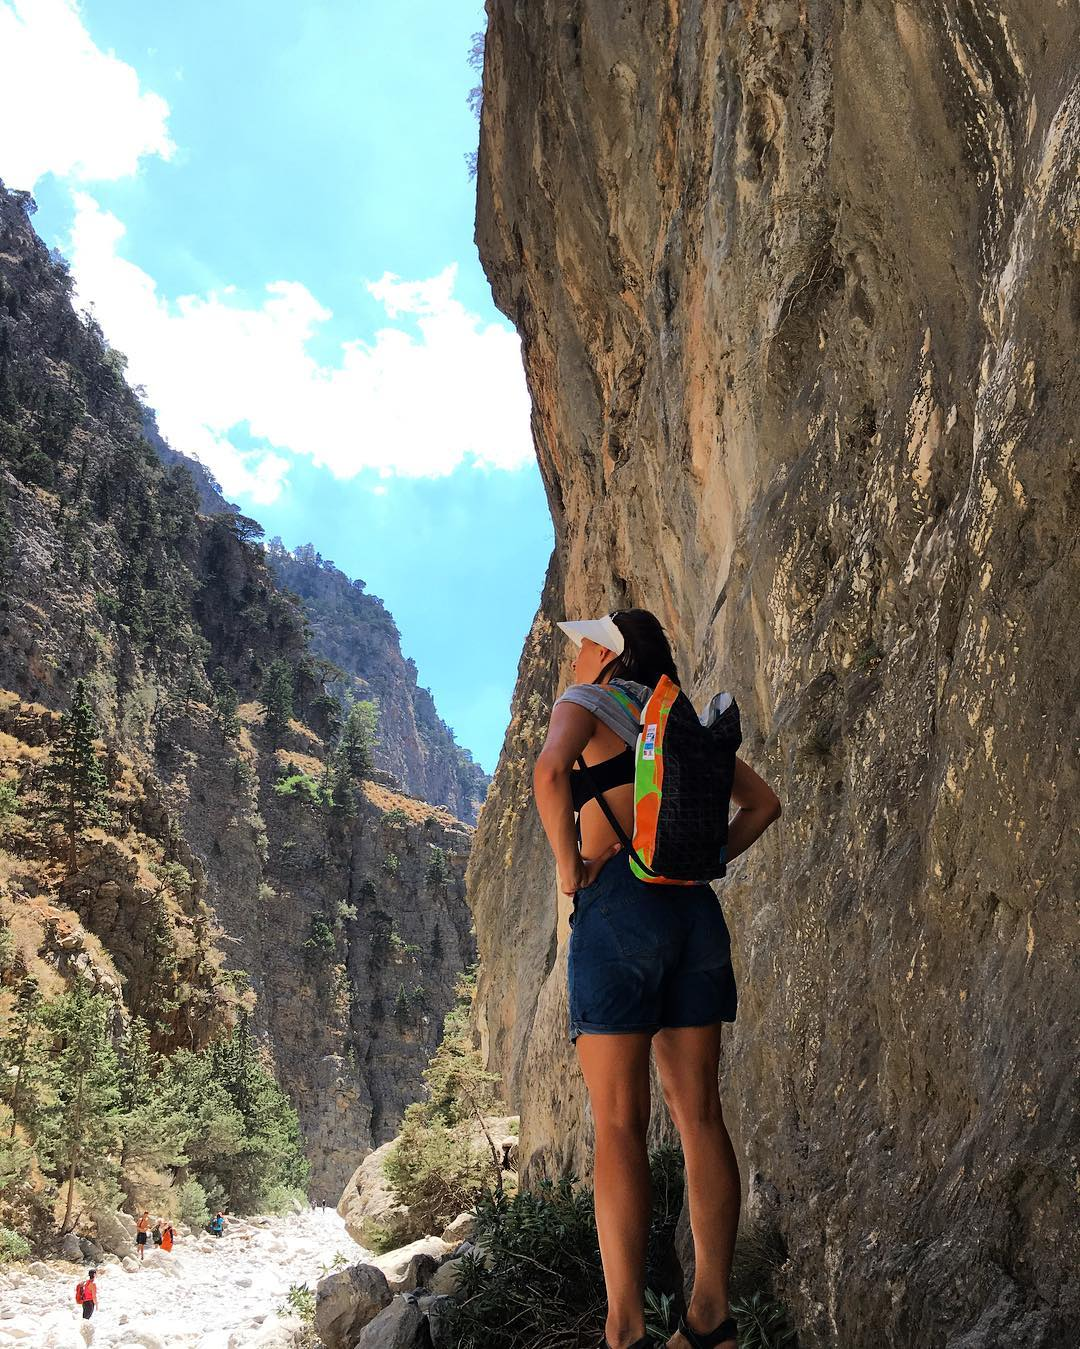 Ksenia our designer on a great hike through Samaria George - Crete testing a secret Mafia pack // Zoom in and double tap if you like the sample.